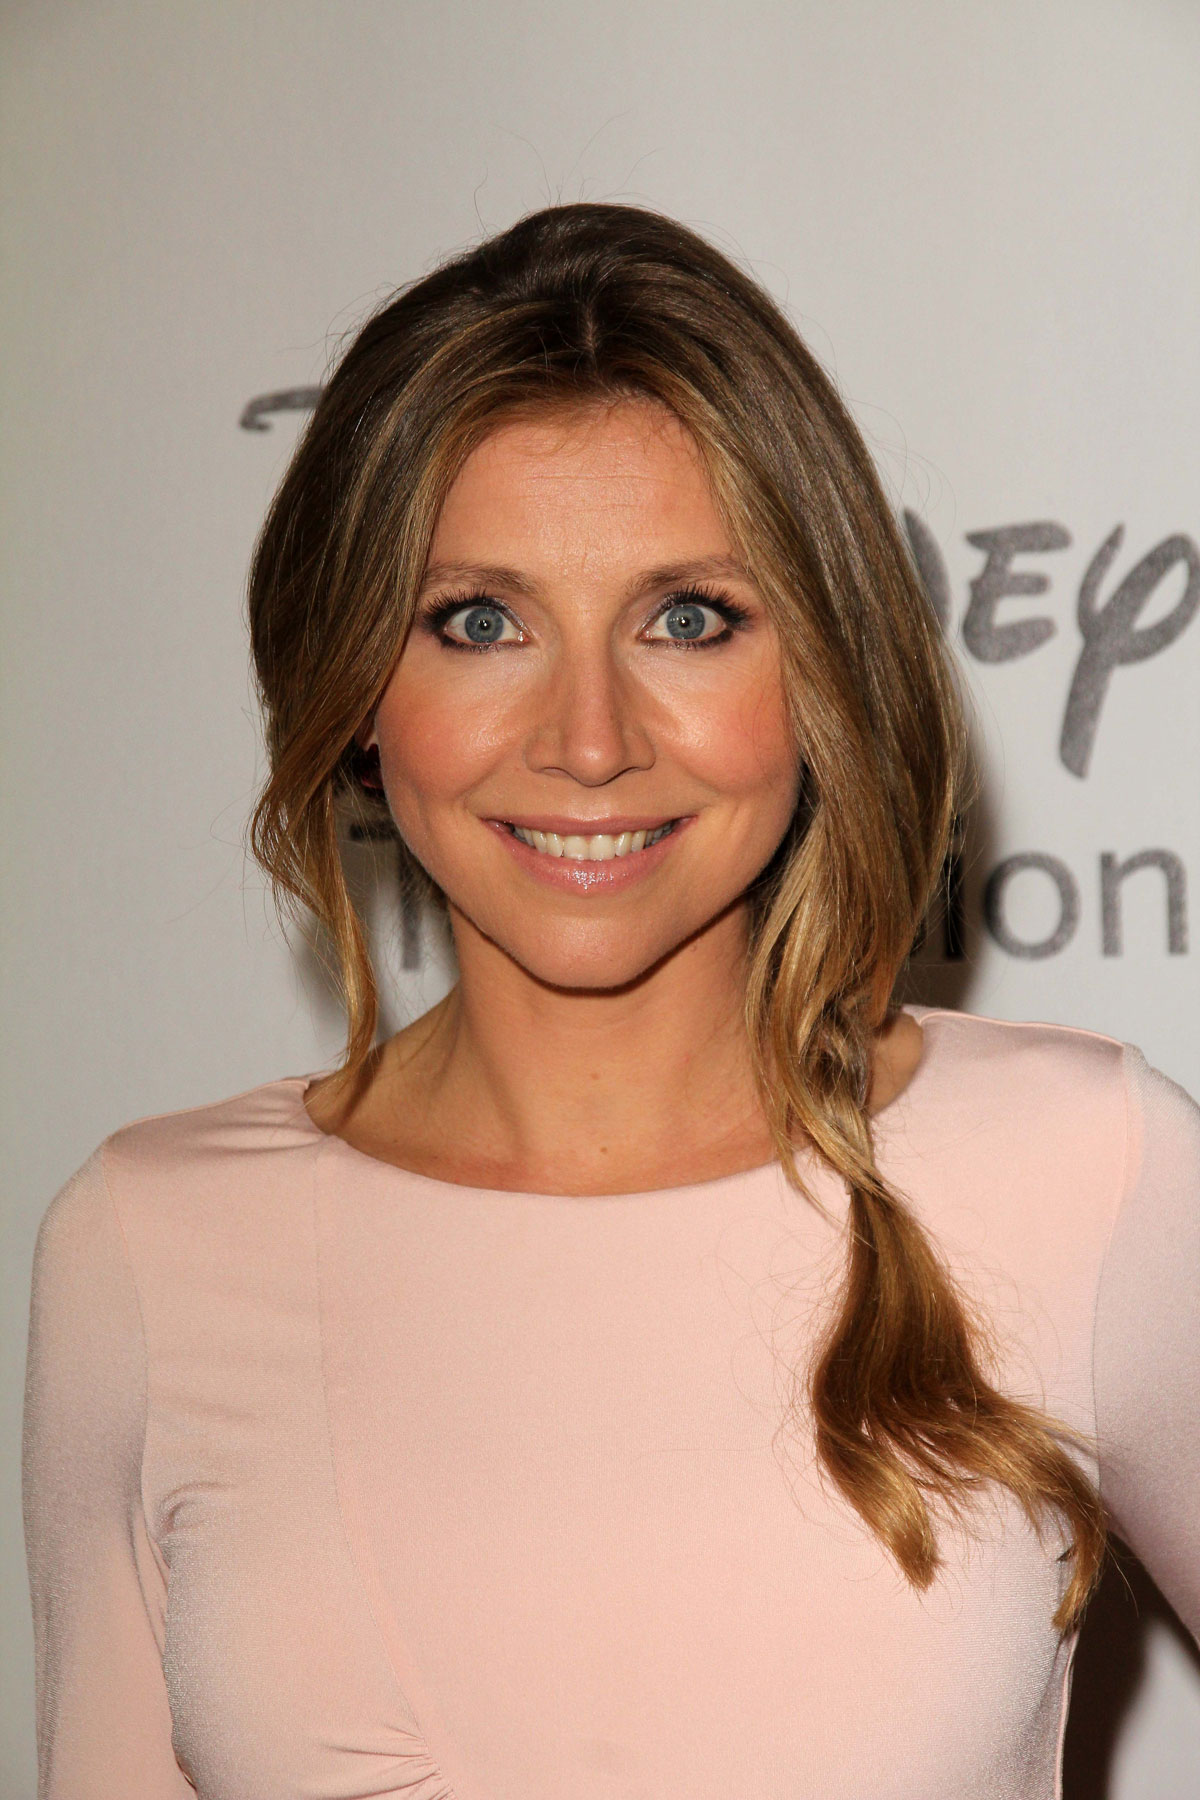 The 40-year old daughter of father Douglas Chalke and mother Angela Chalke, 173 cm tall Sarah Chalke in 2017 photo